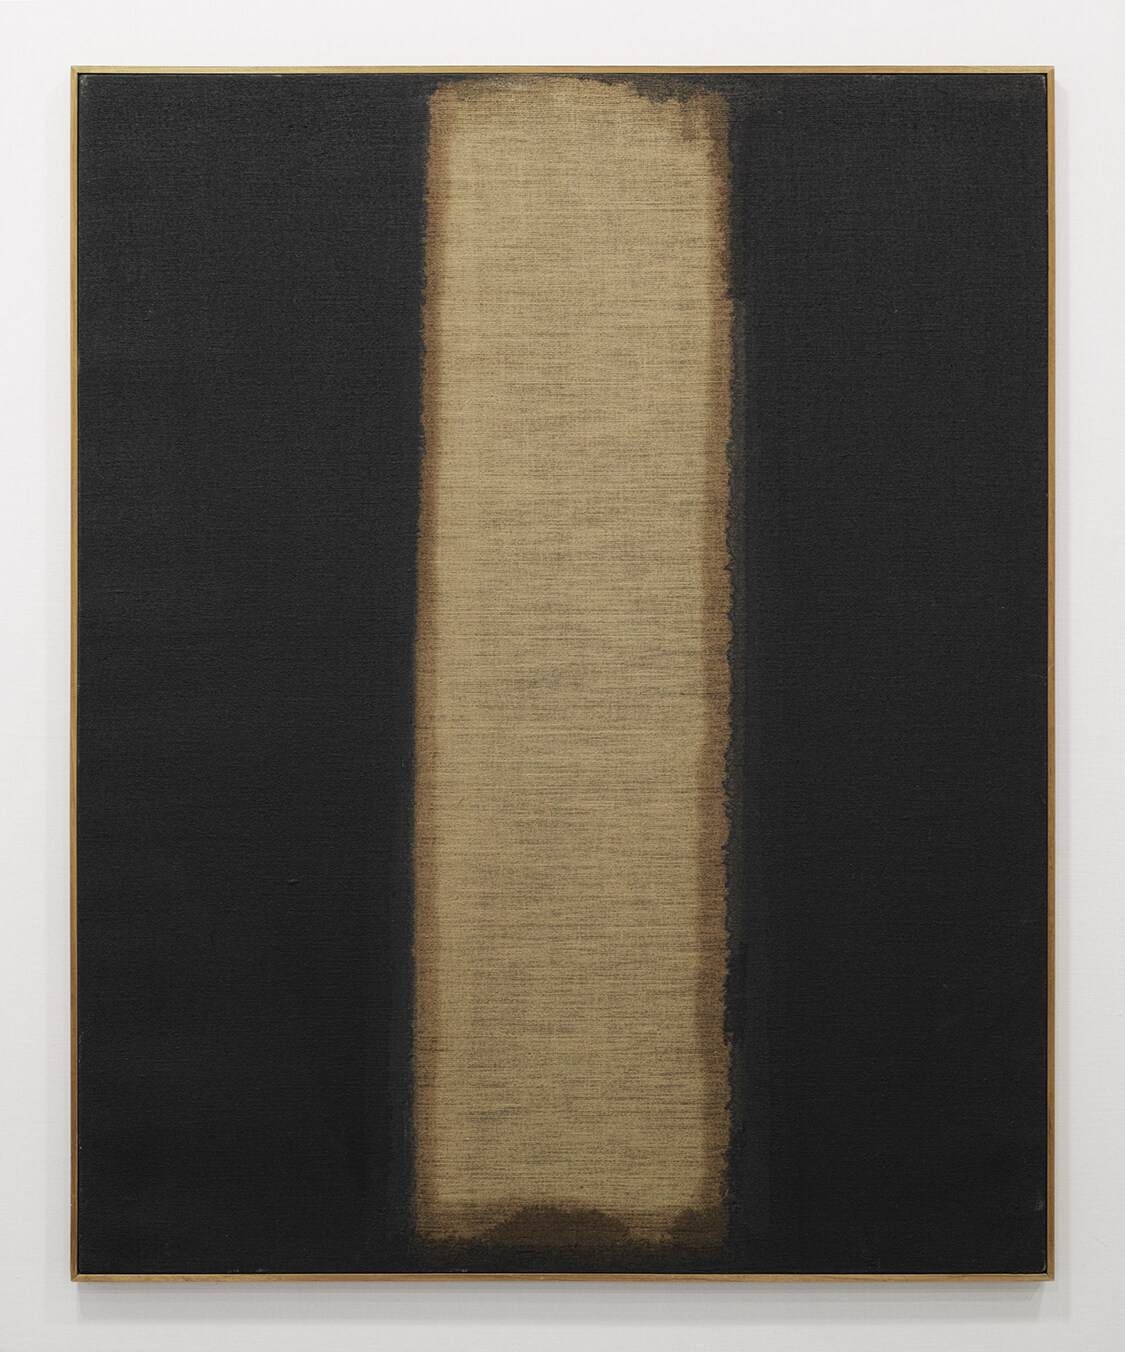 <b>UMBER-BLUE 1977</b><br>Oil on Canvas<br>100.0 x 80.3 cm<br>Coll: Tokyo Opera City Art Gallery